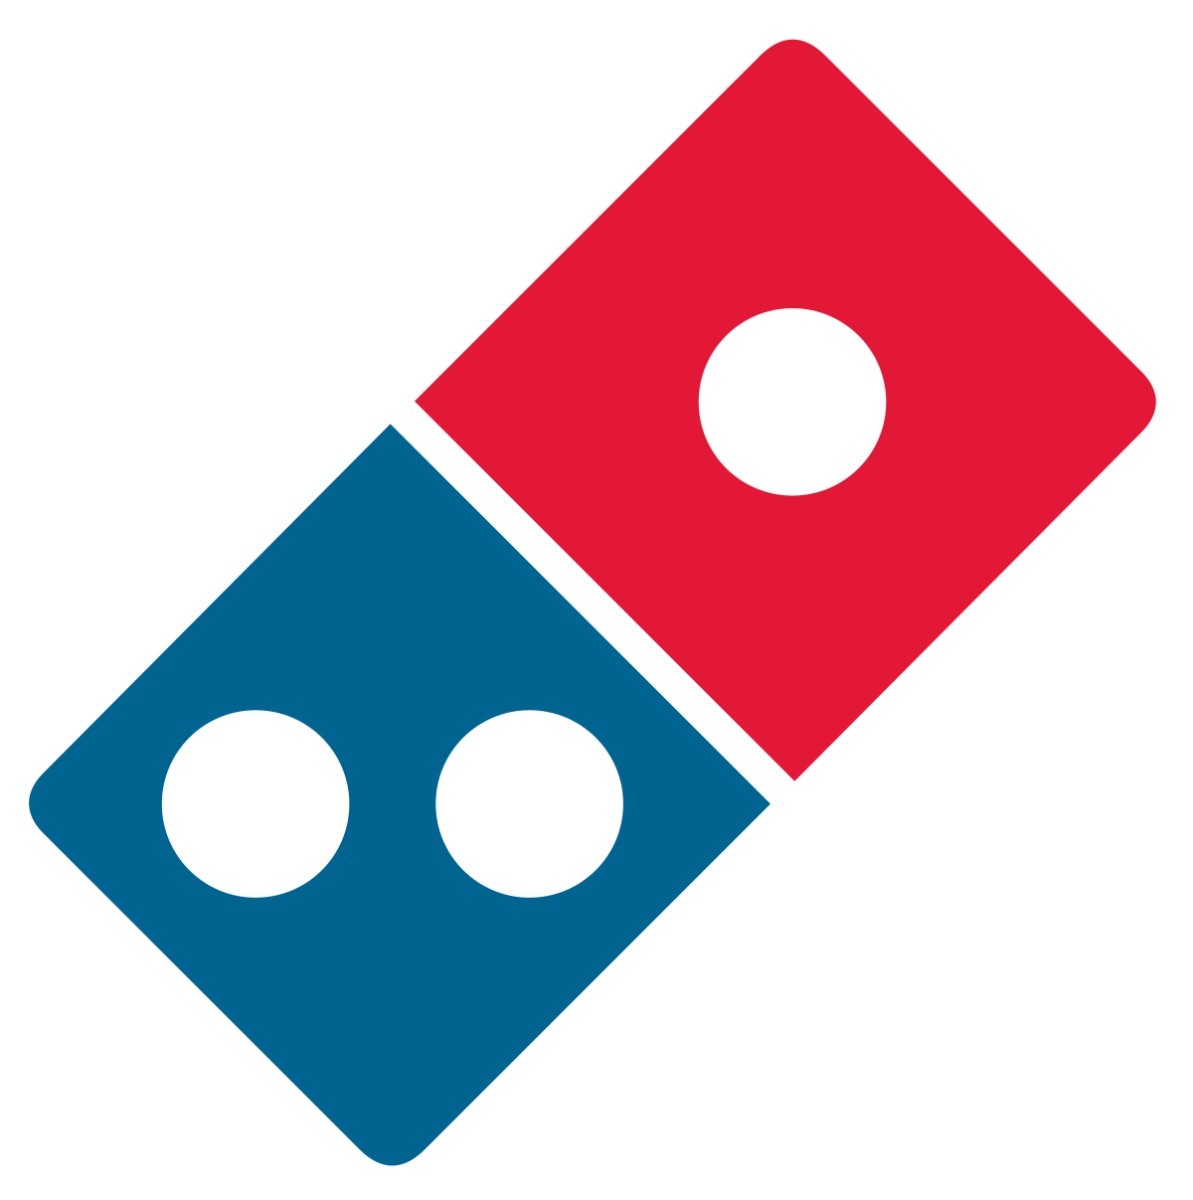 In 1960, Dominos Pizza was founded by brothers Tom and Jim Monaghan.